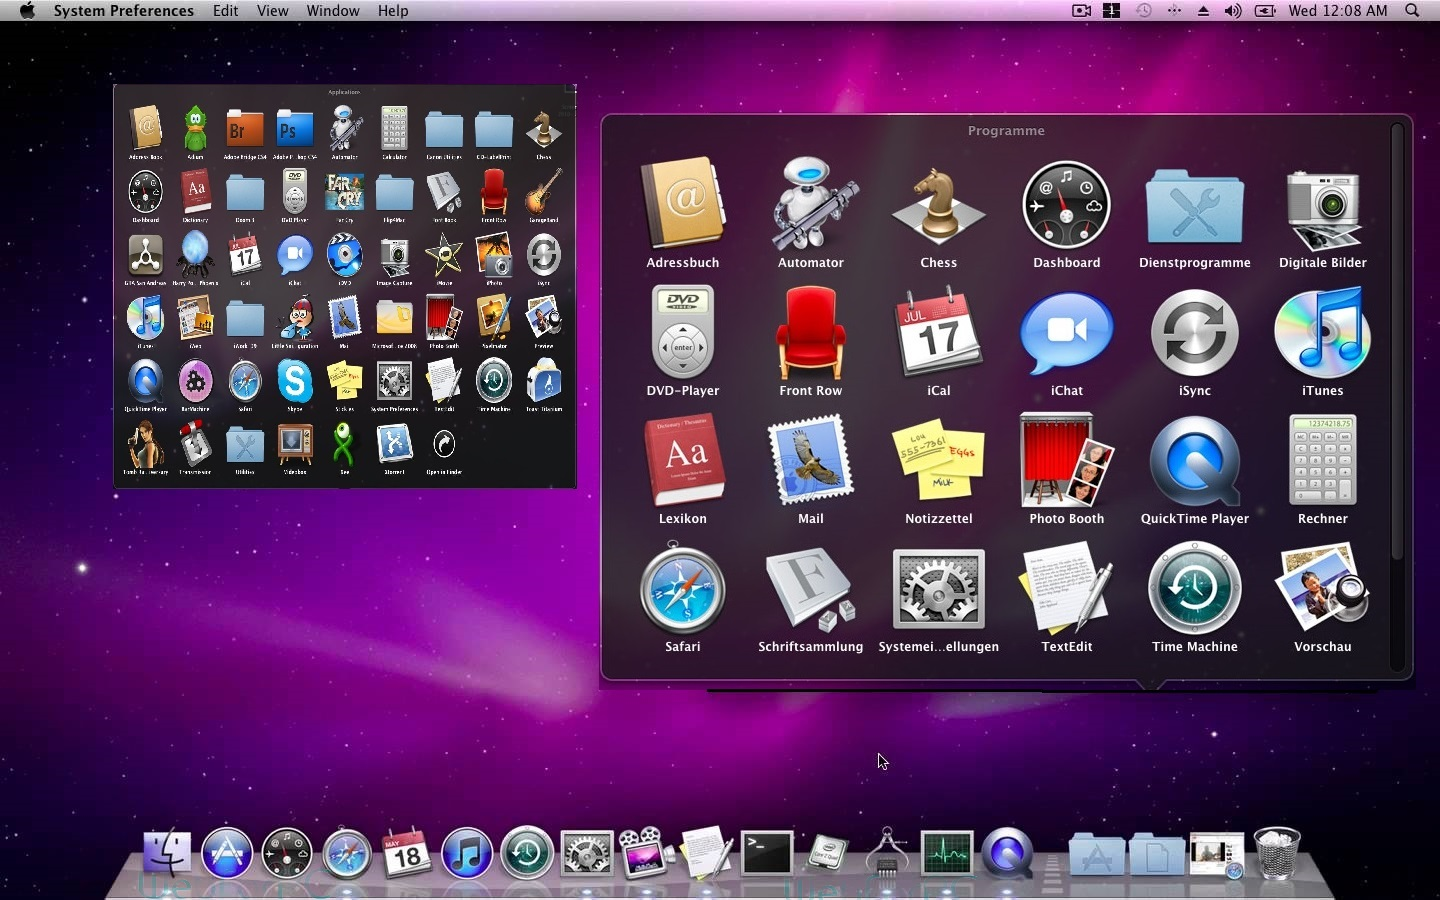 Mac Os X Snow Leopard Free Download Dvd Iso Webforpc